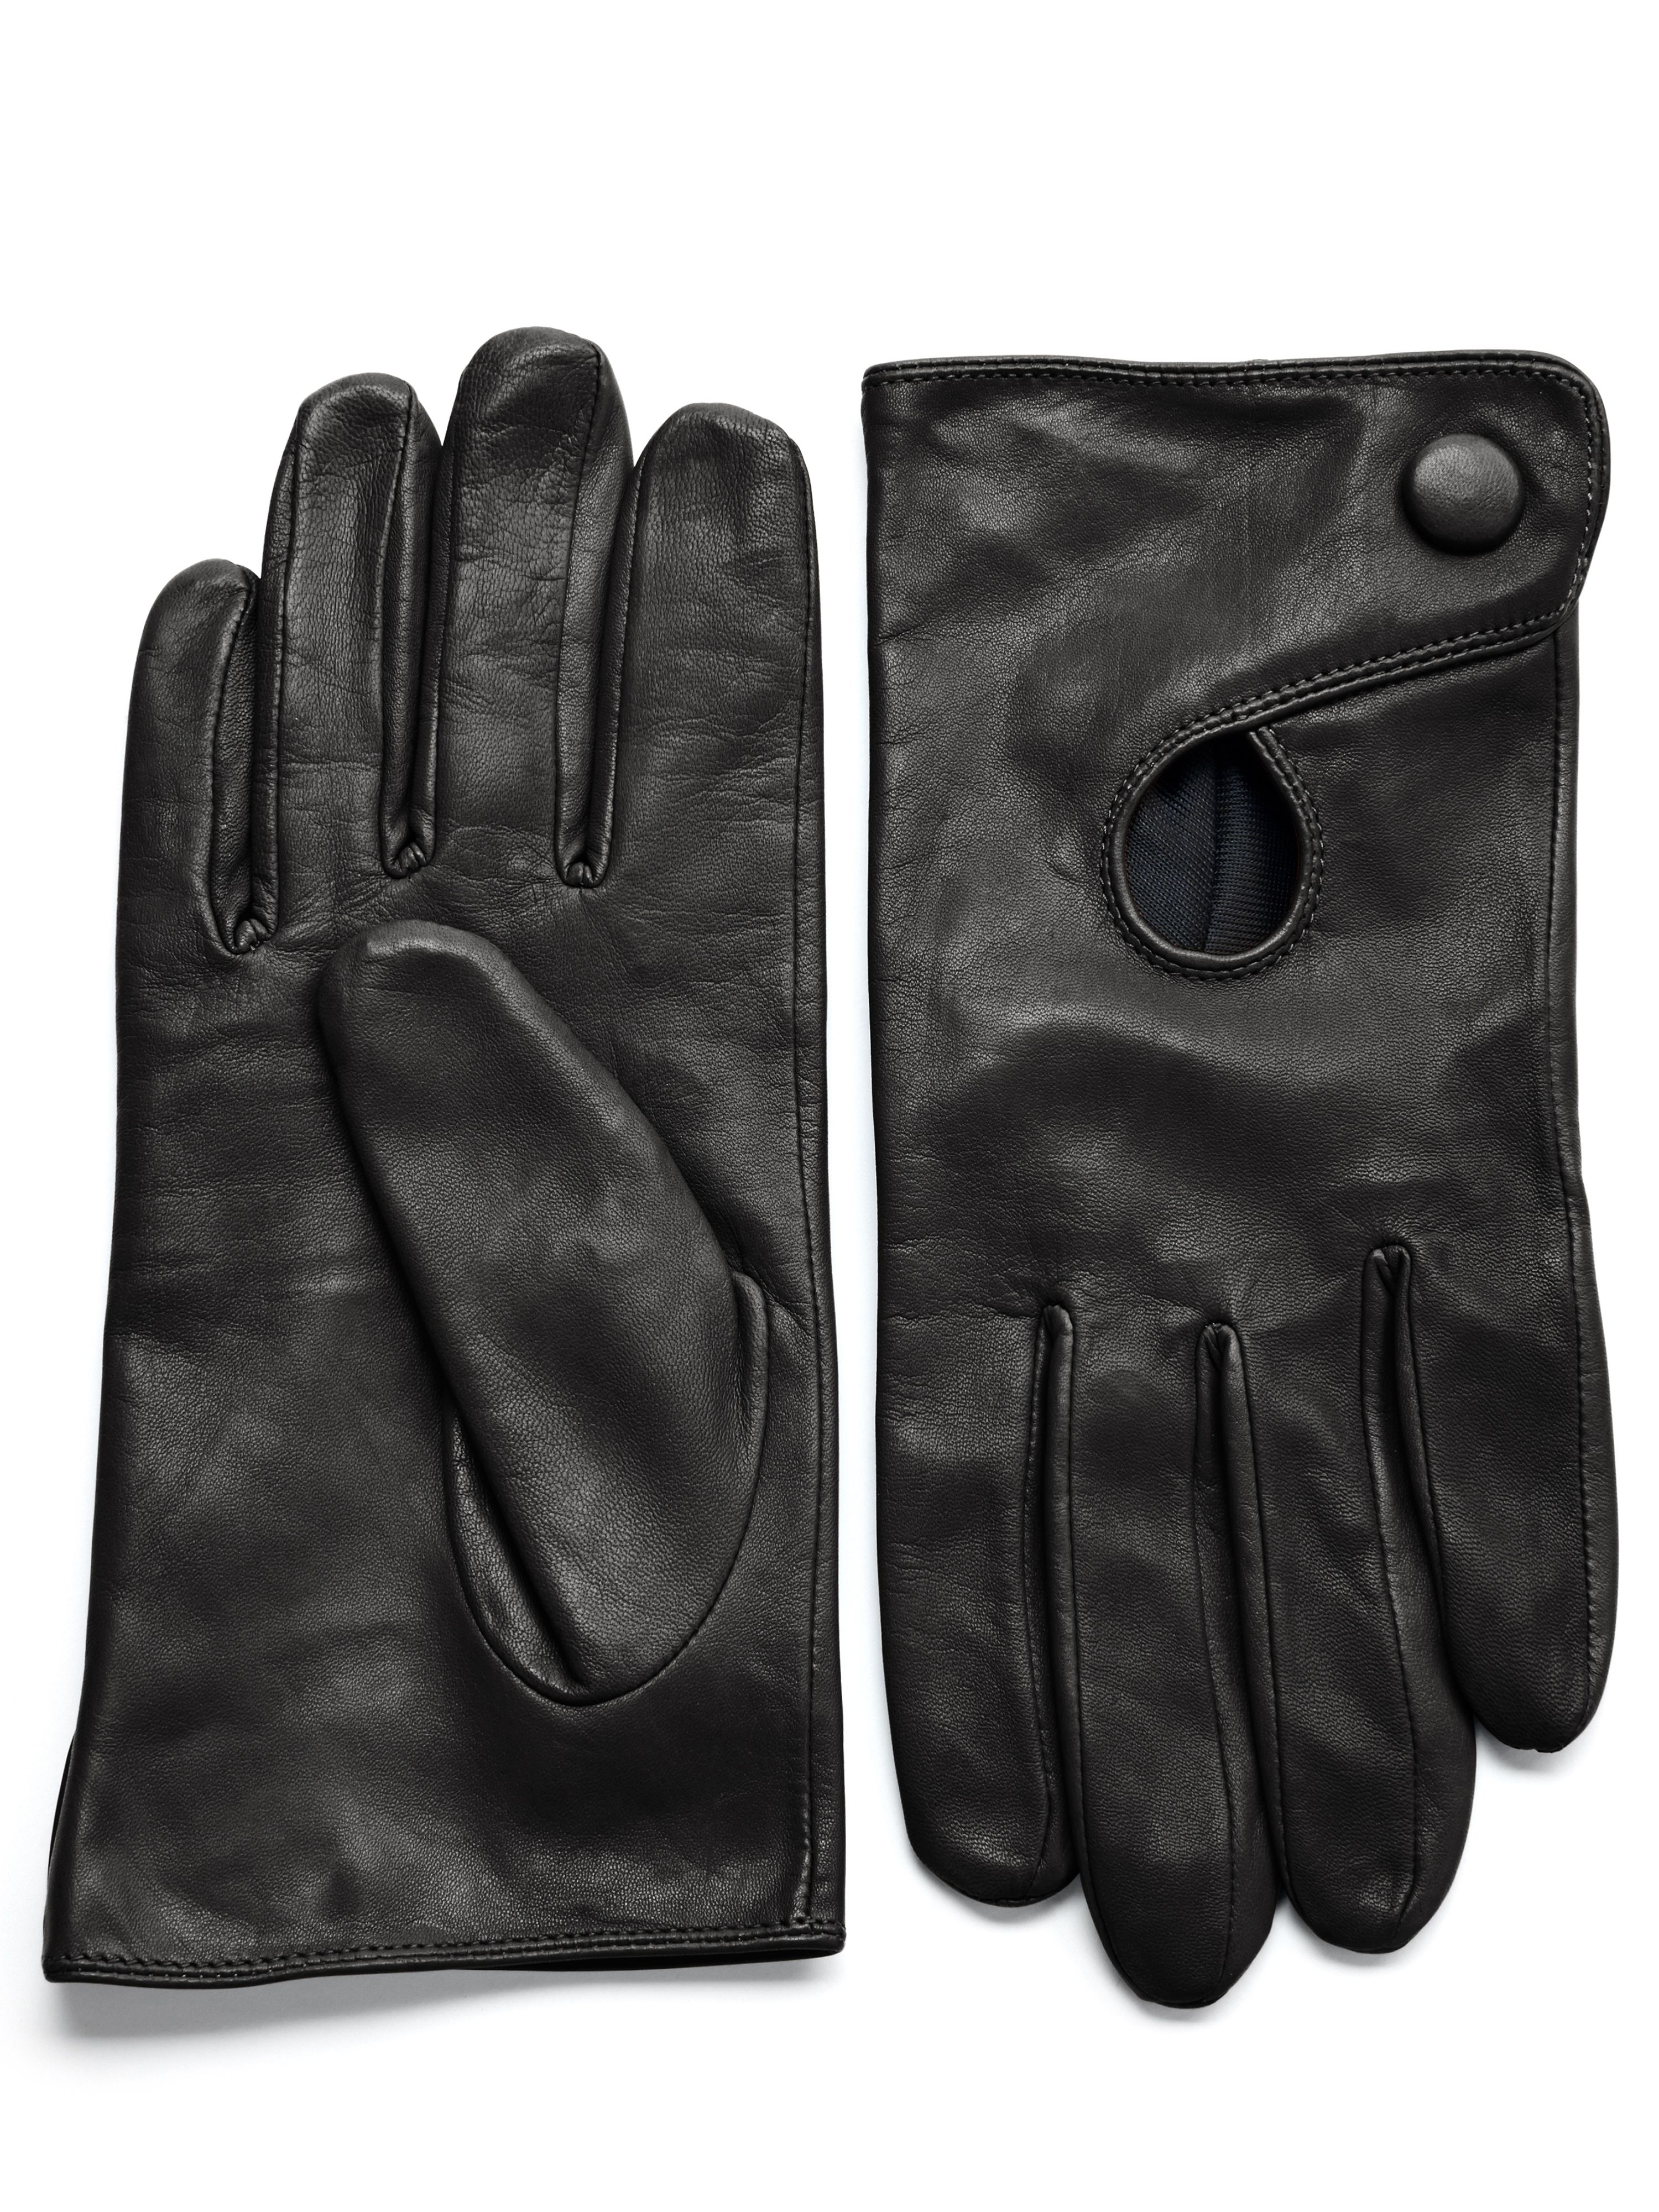 95052dbc2566d Black Leather Danier Gloves | Lizbeth | Leather, Gloves, Leather fashion